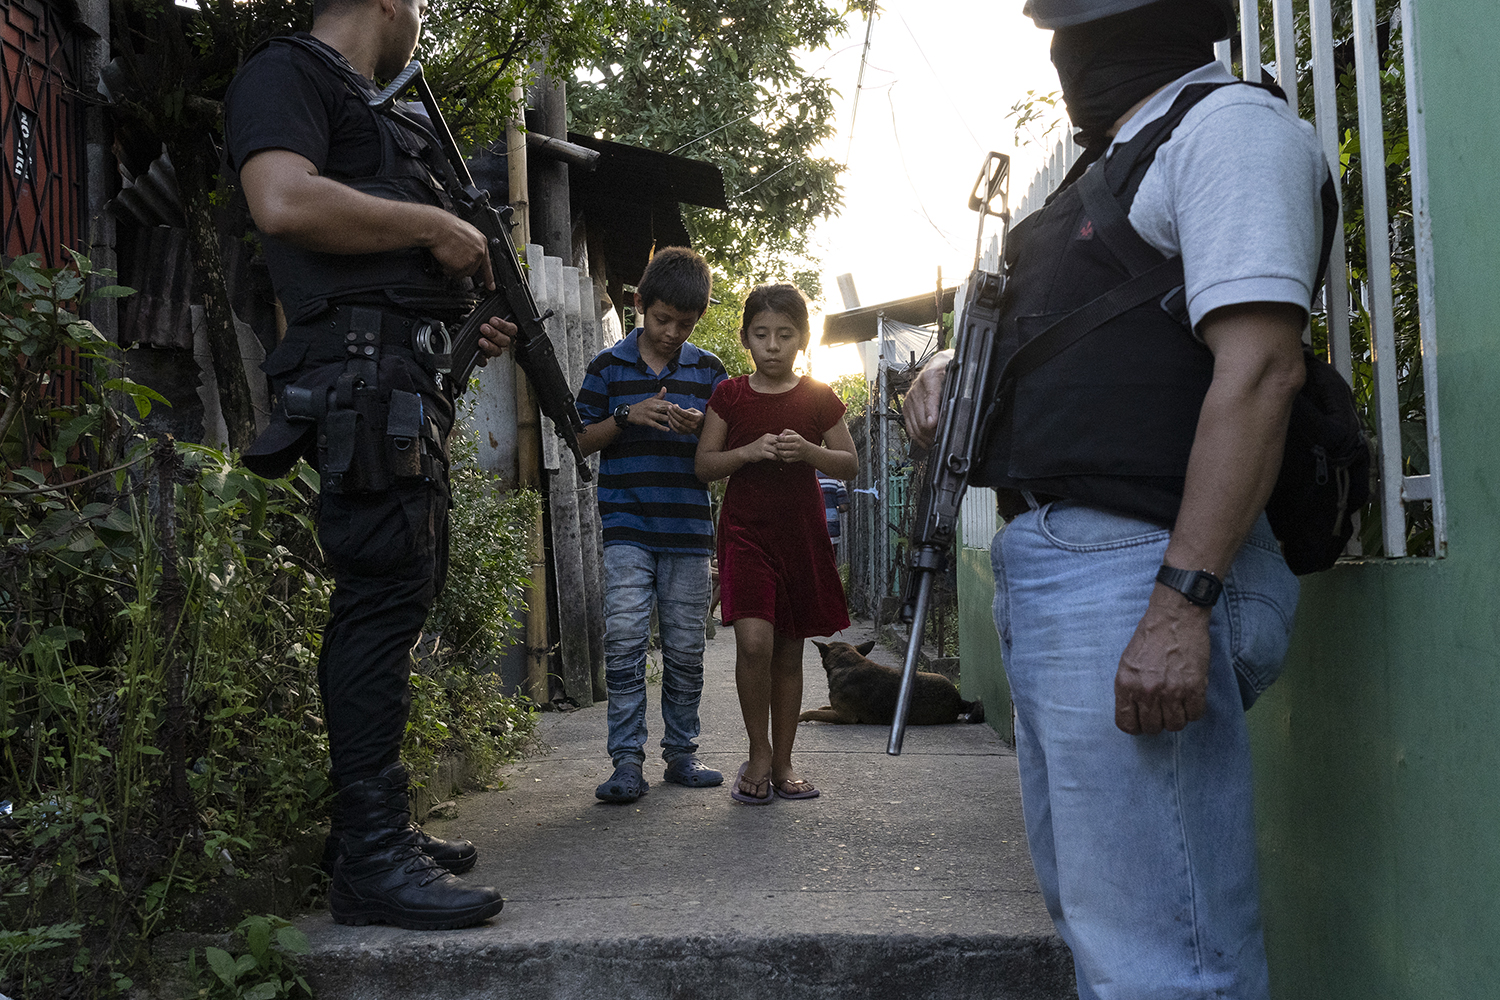 Children who live in a low-income neighborhood controlled by MS-13 pass by a police patrol in San Martín, San Salvador, on Nov. 5, 2018.